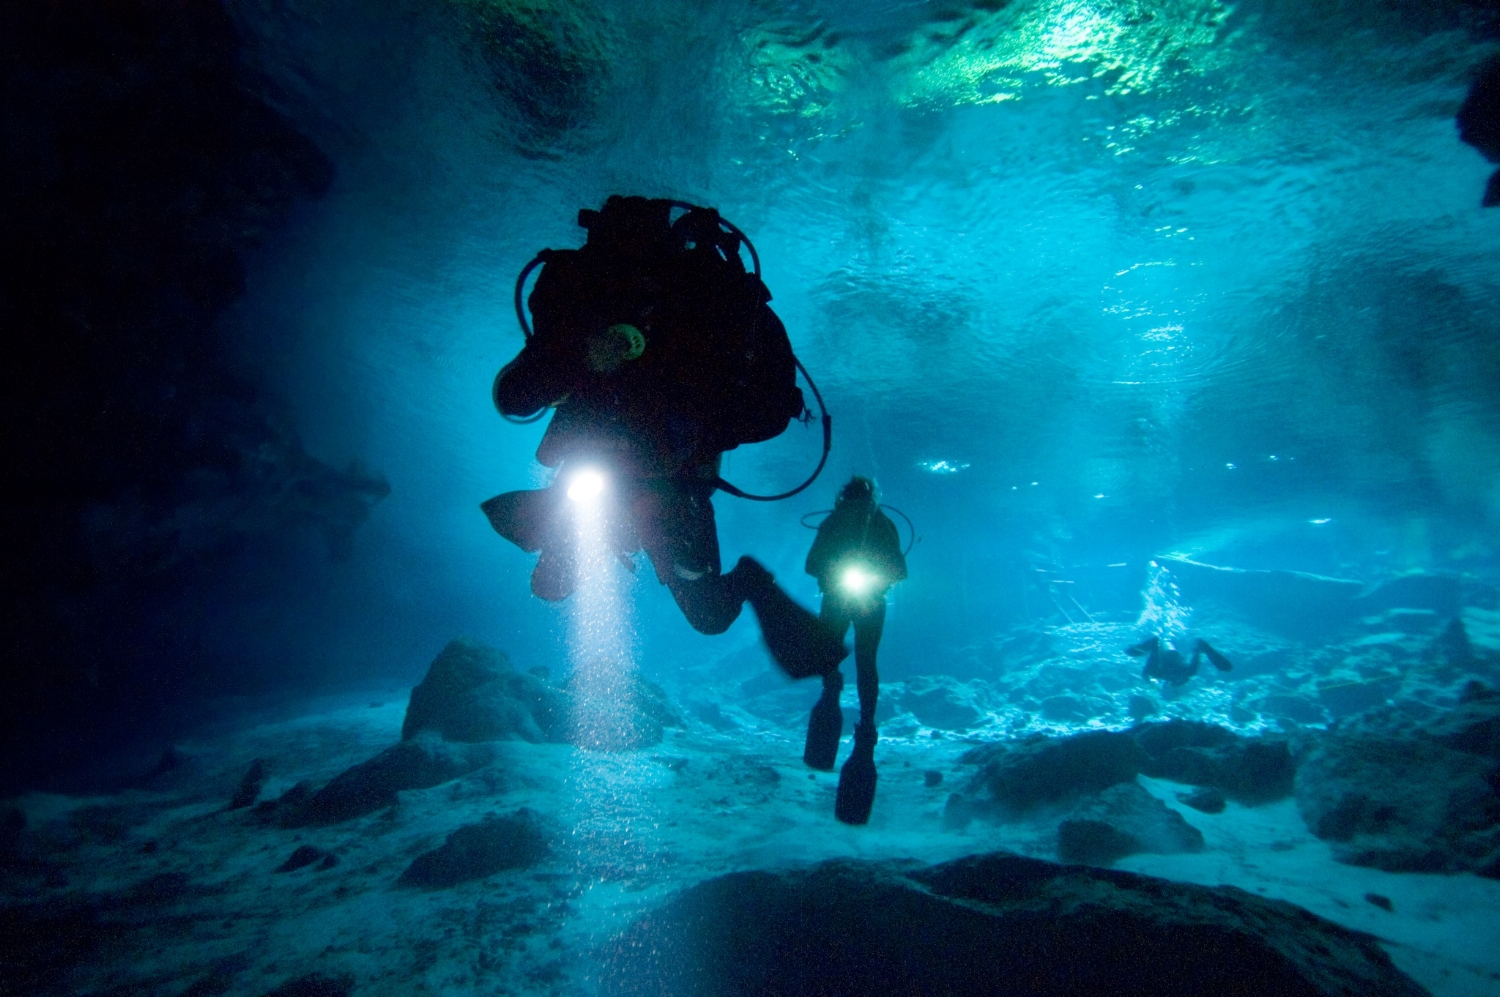 With flashlights in hand, cavern divers Mariana Leal, right, and Darlene Ott enter Dos Ojos cenote near Playa del Carmen Mexico on Thursday May 31, 2007.  Cenotes are entrances to a huge freshwater-filled cave system in theRiviera Maya area of Mexico.